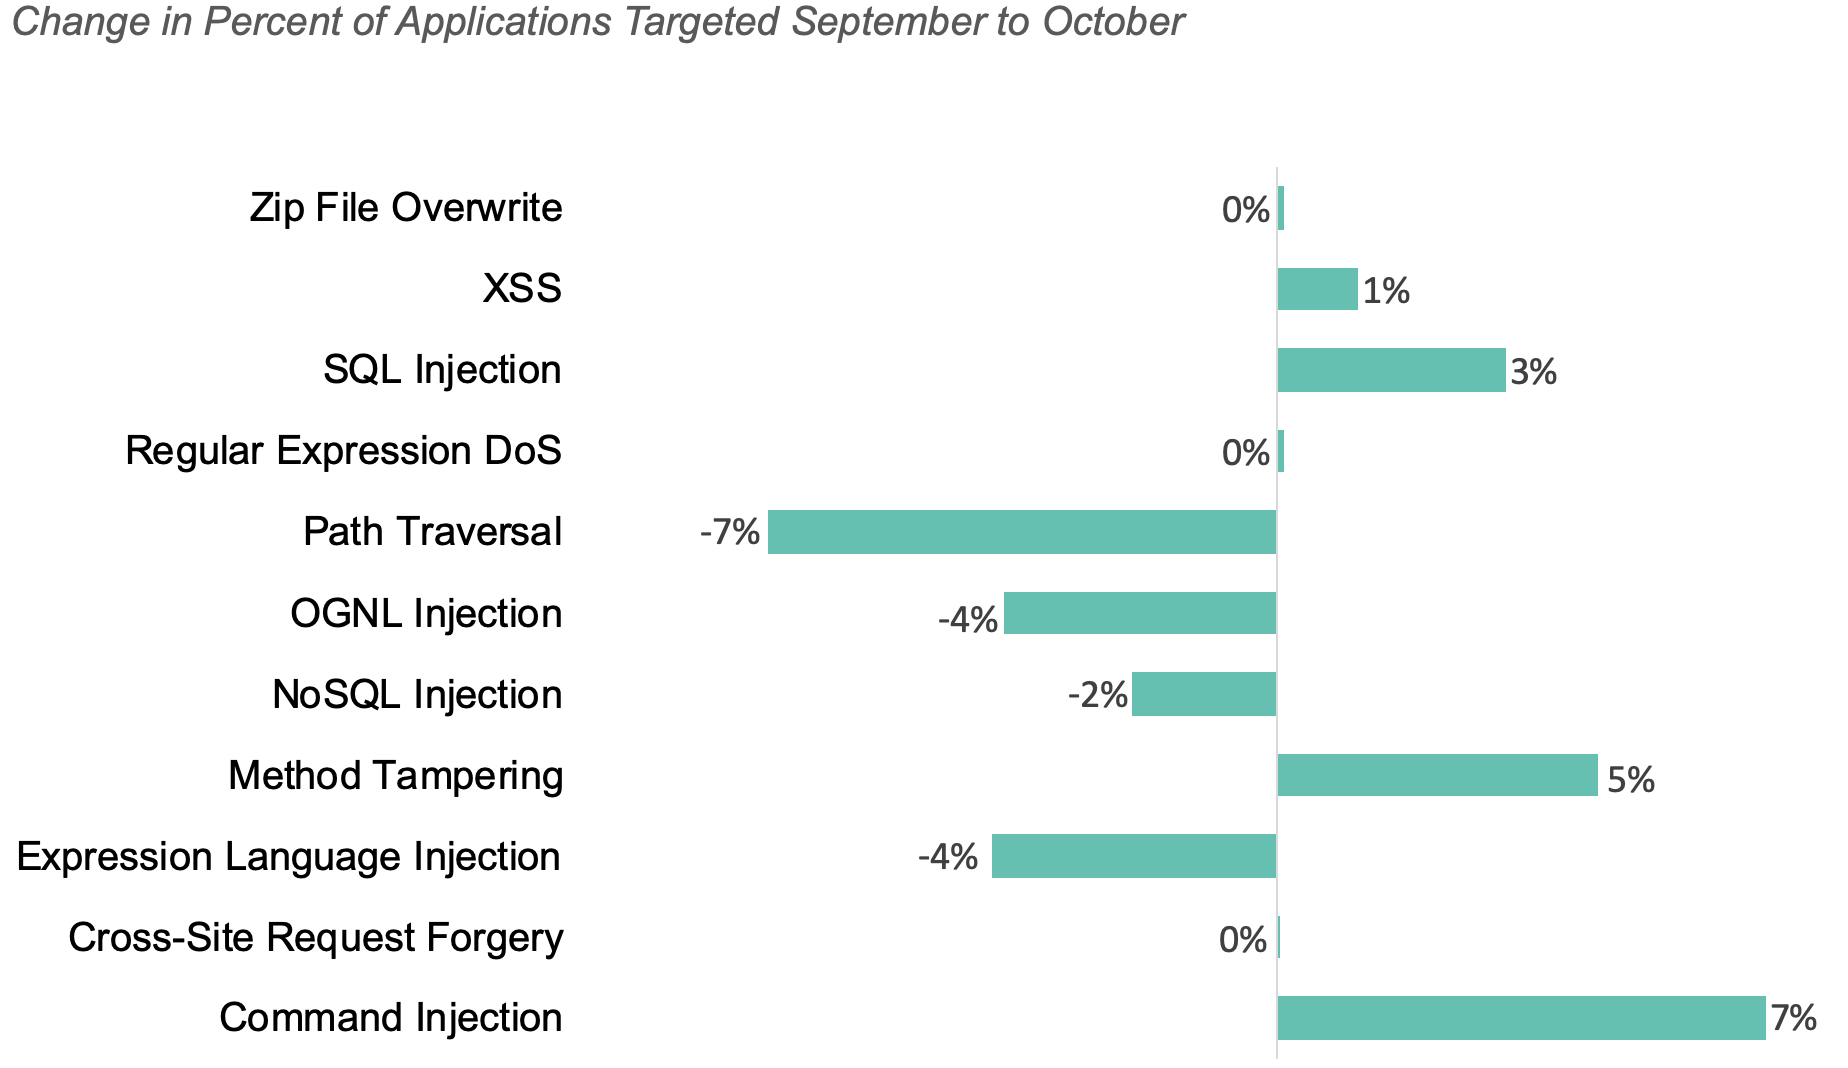 Change in percent of applications targeted Sept to Oct